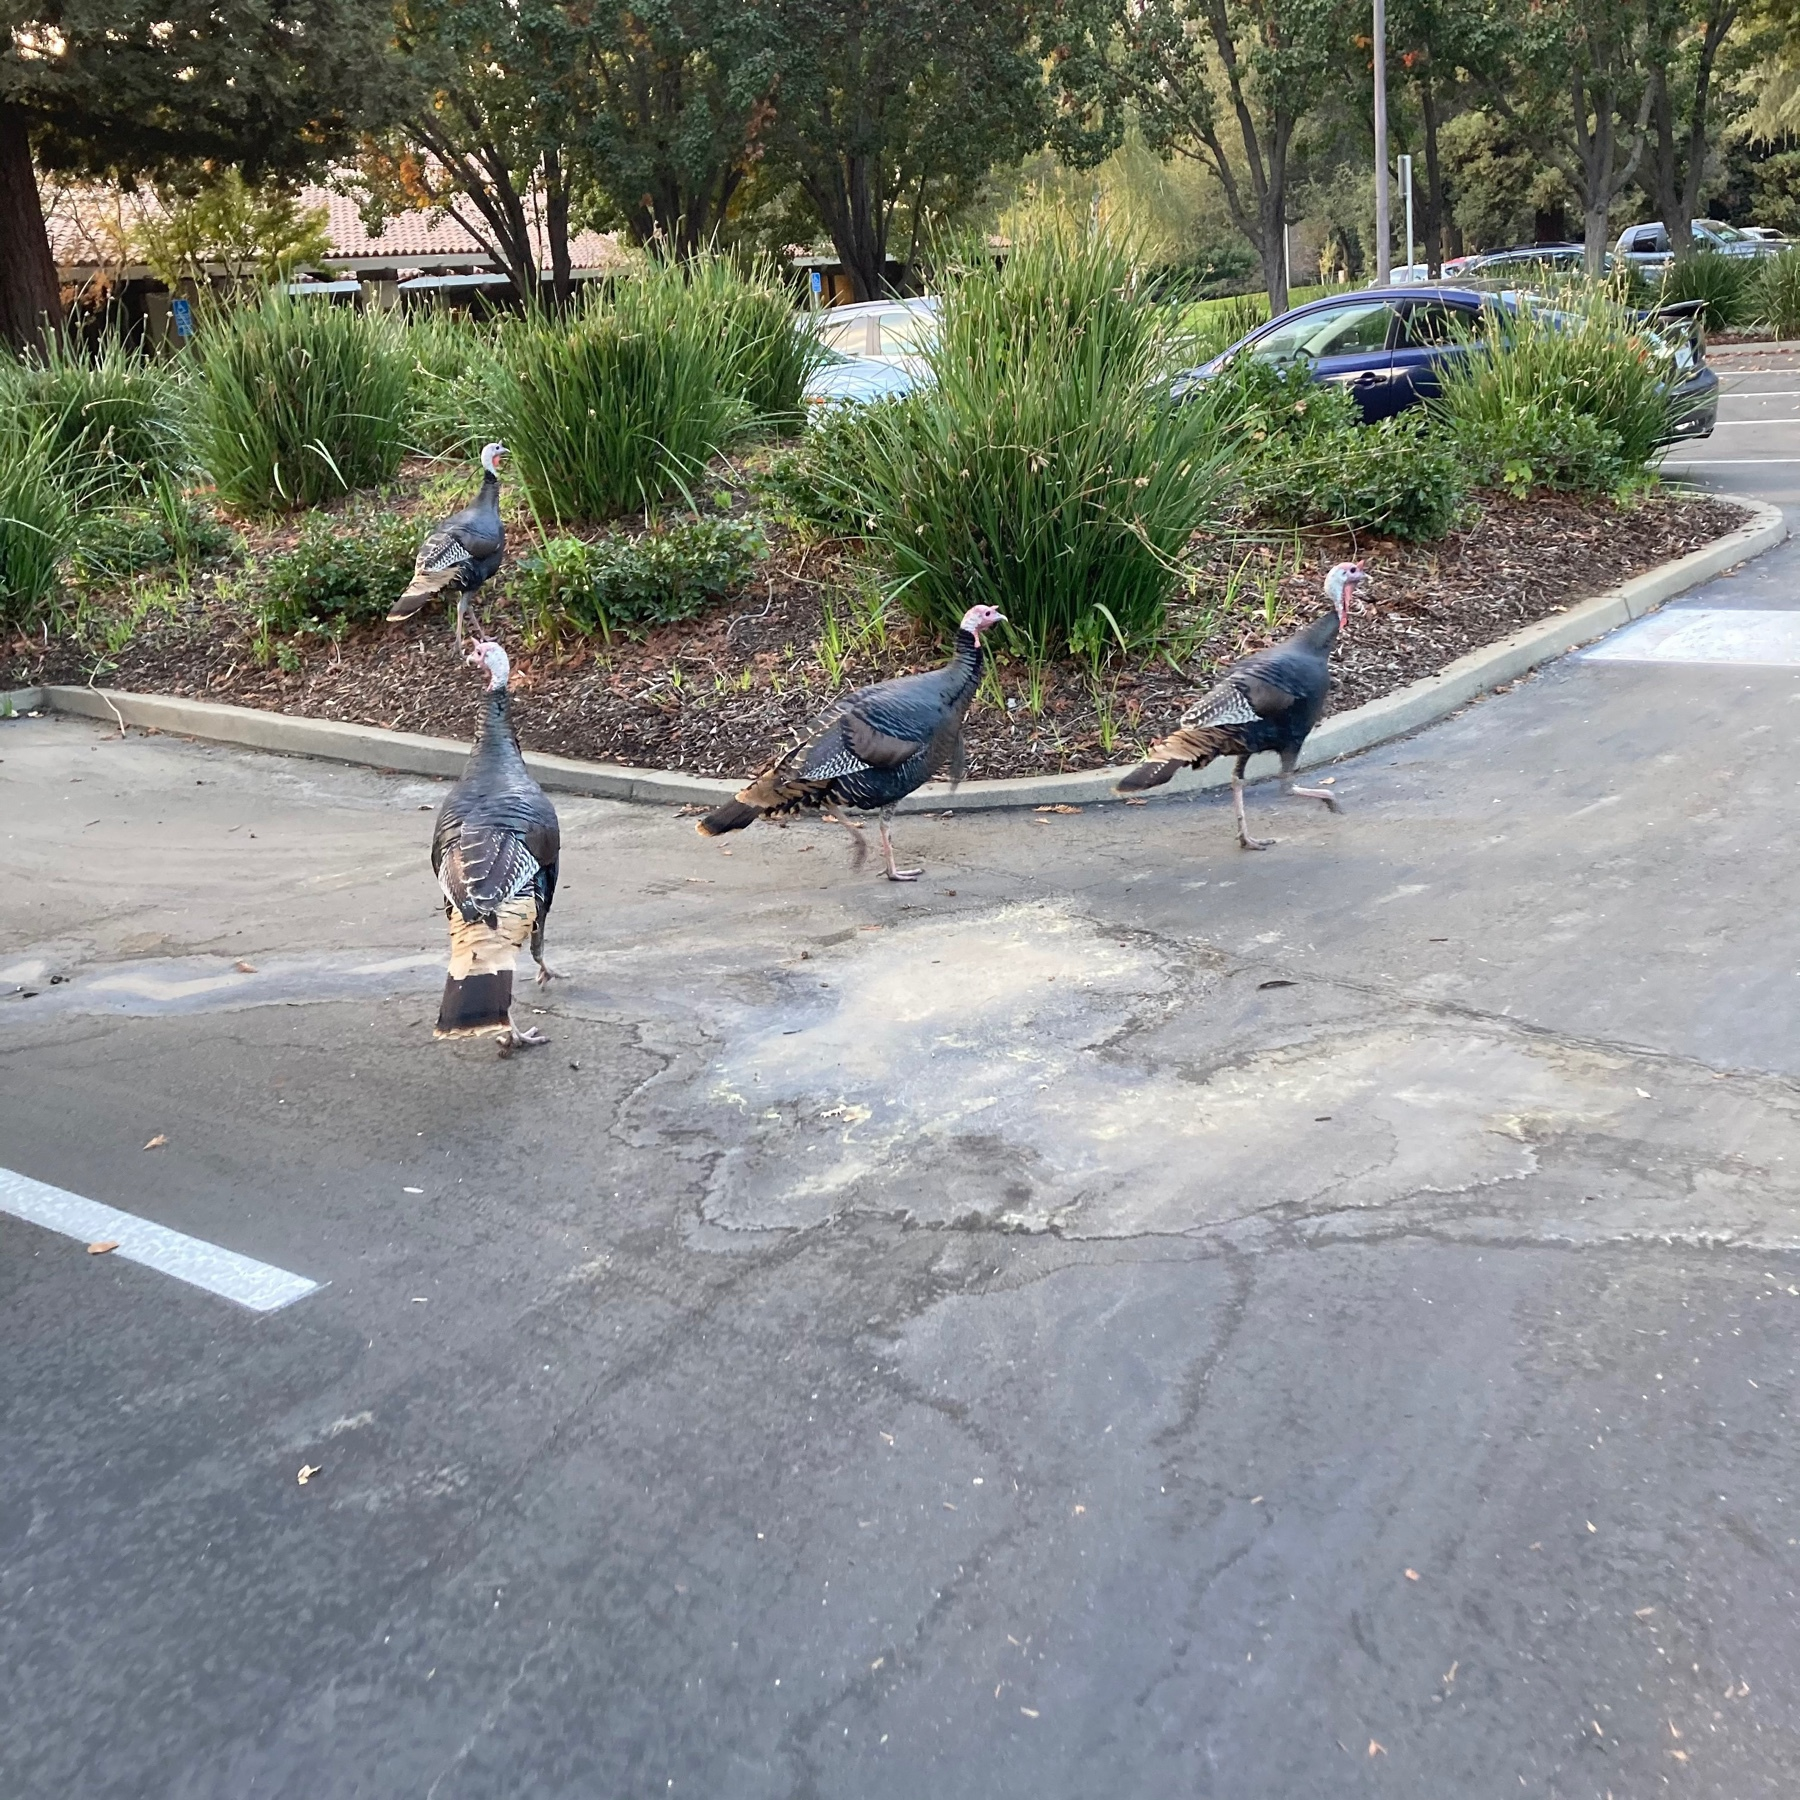 Some turkeys just hanging out.